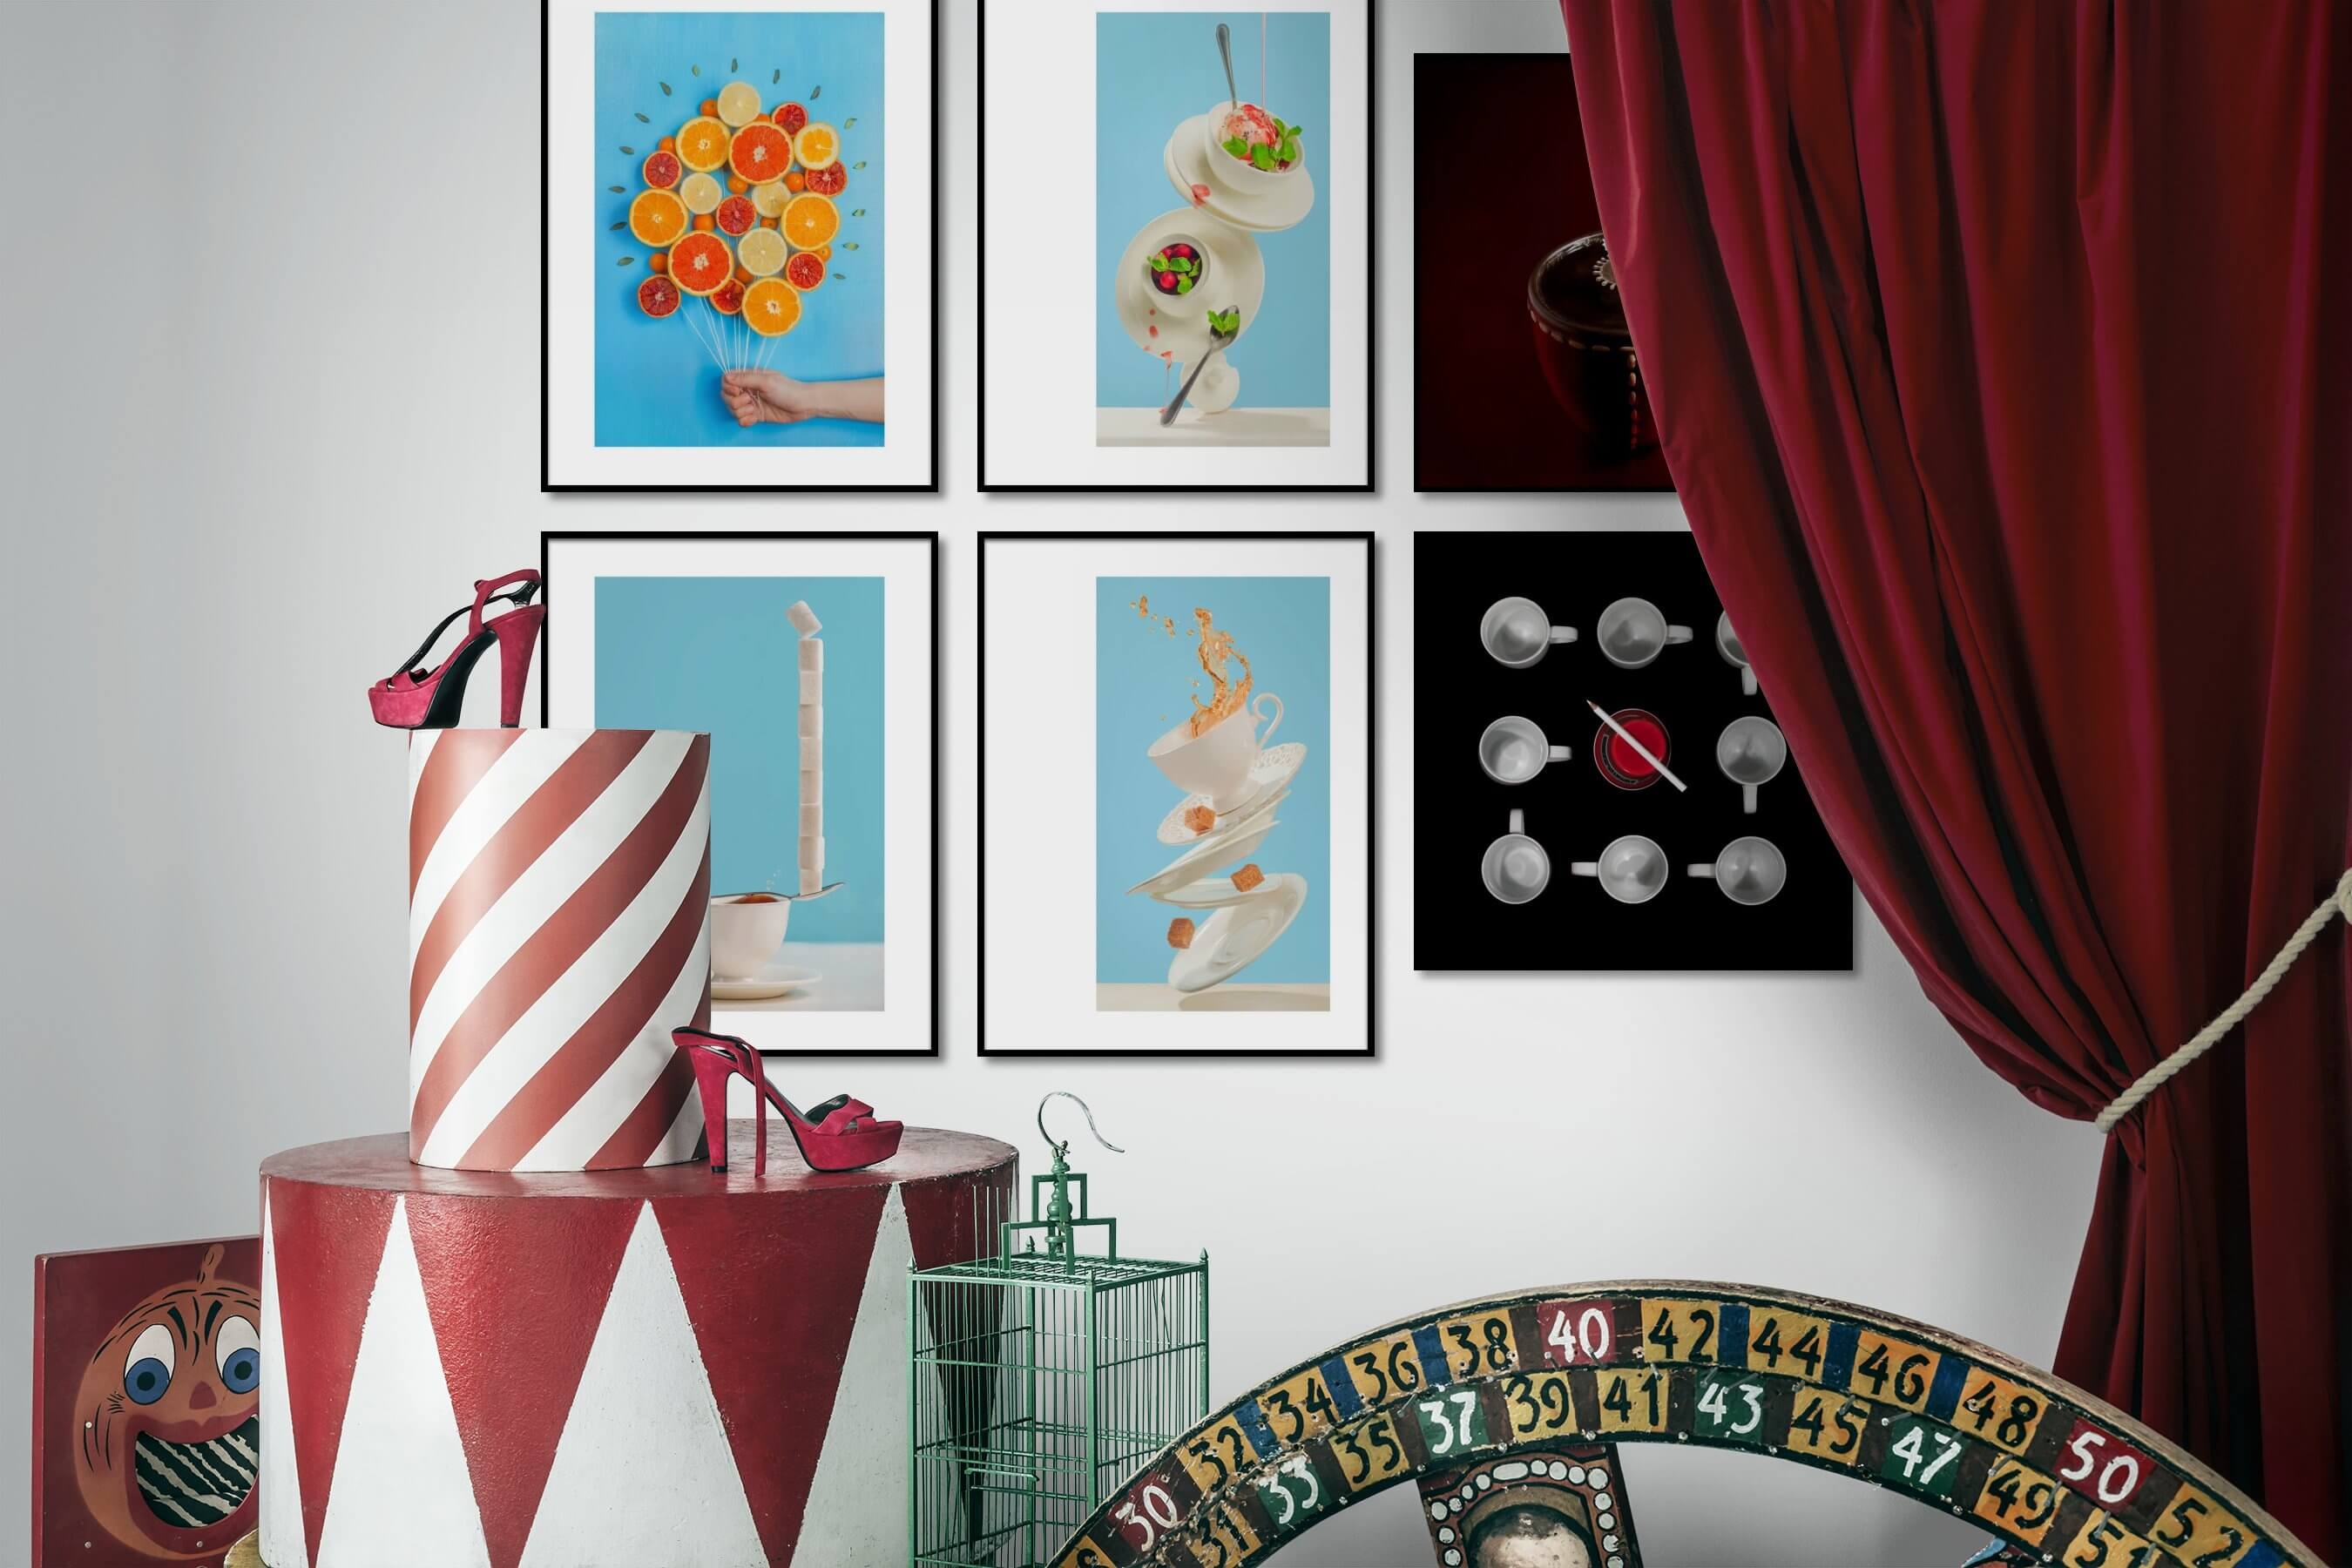 Gallery wall idea with six framed pictures arranged on a wall depicting For the Moderate, For the Minimalist, and Dark Tones